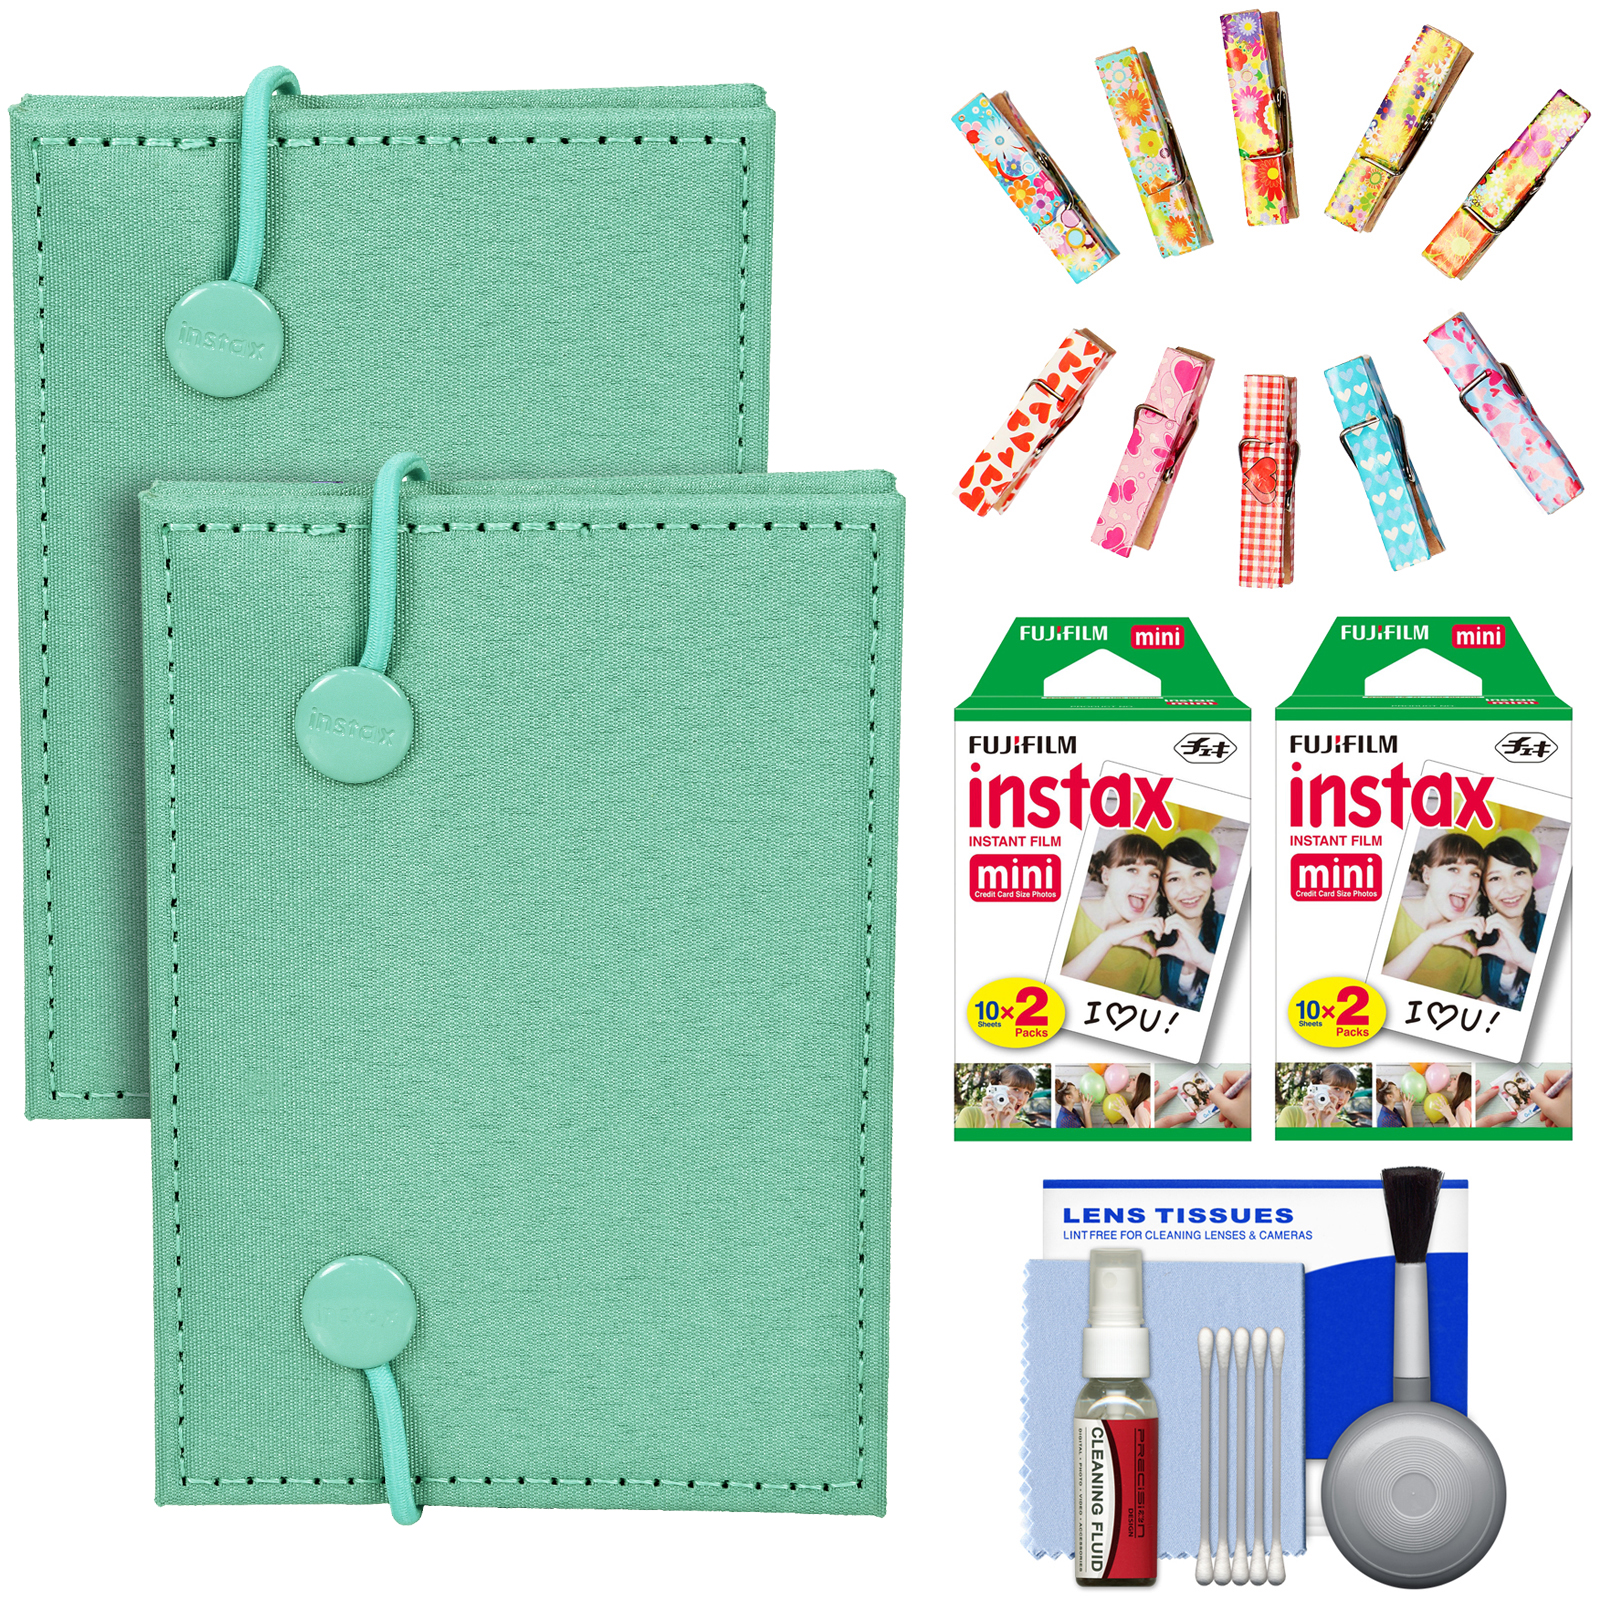 FujiFilm Instax Mini Accordion Photo Album (Green) (2 Pack) with 40 Twin Prints + Wood Peg Clips + Cleaning... by Fujifilm